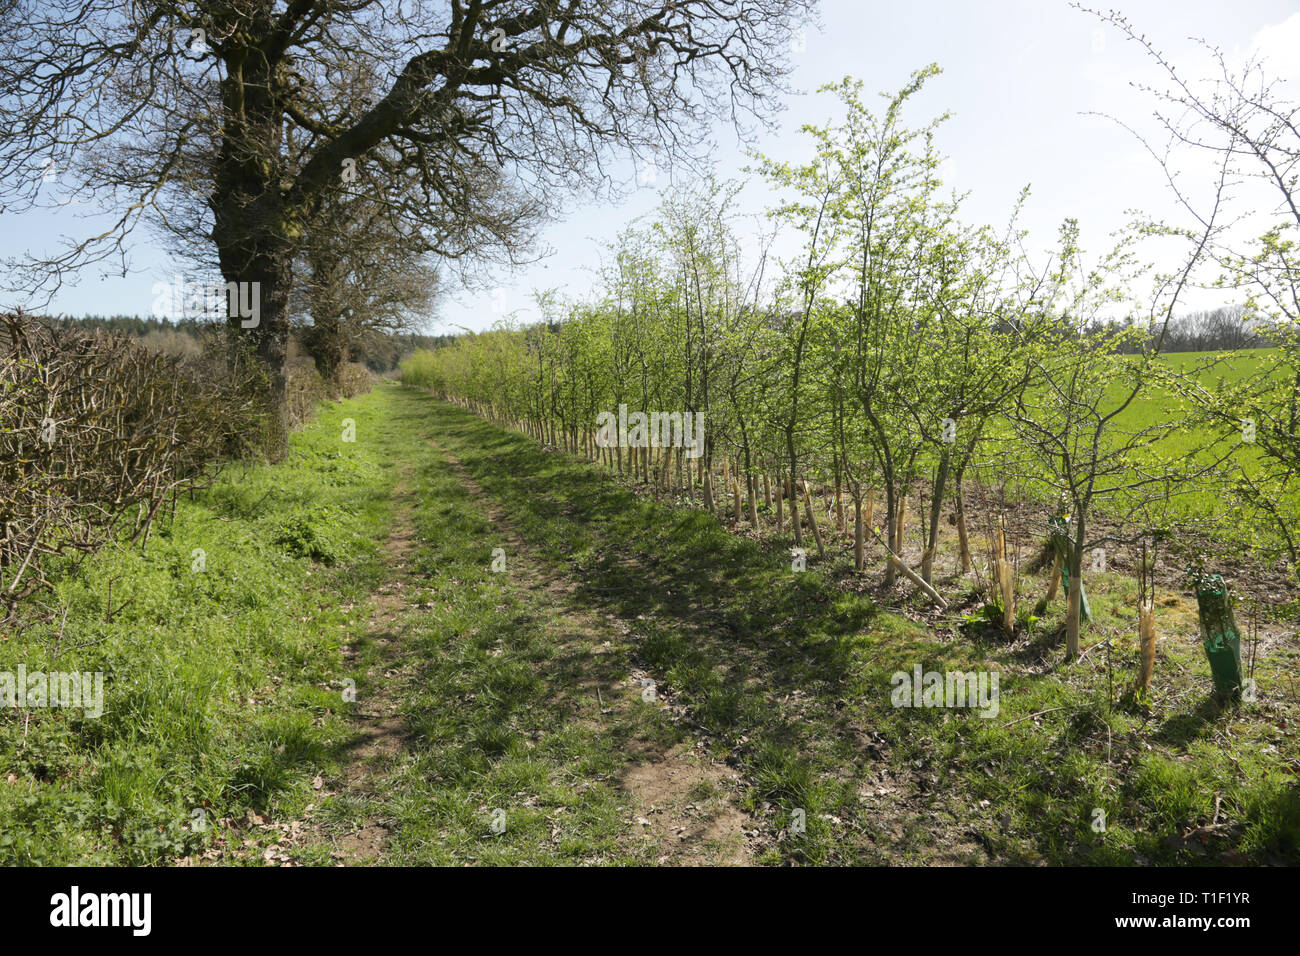 A newly planted hedgerow in Worcestershire, England, UK. Stock Photo